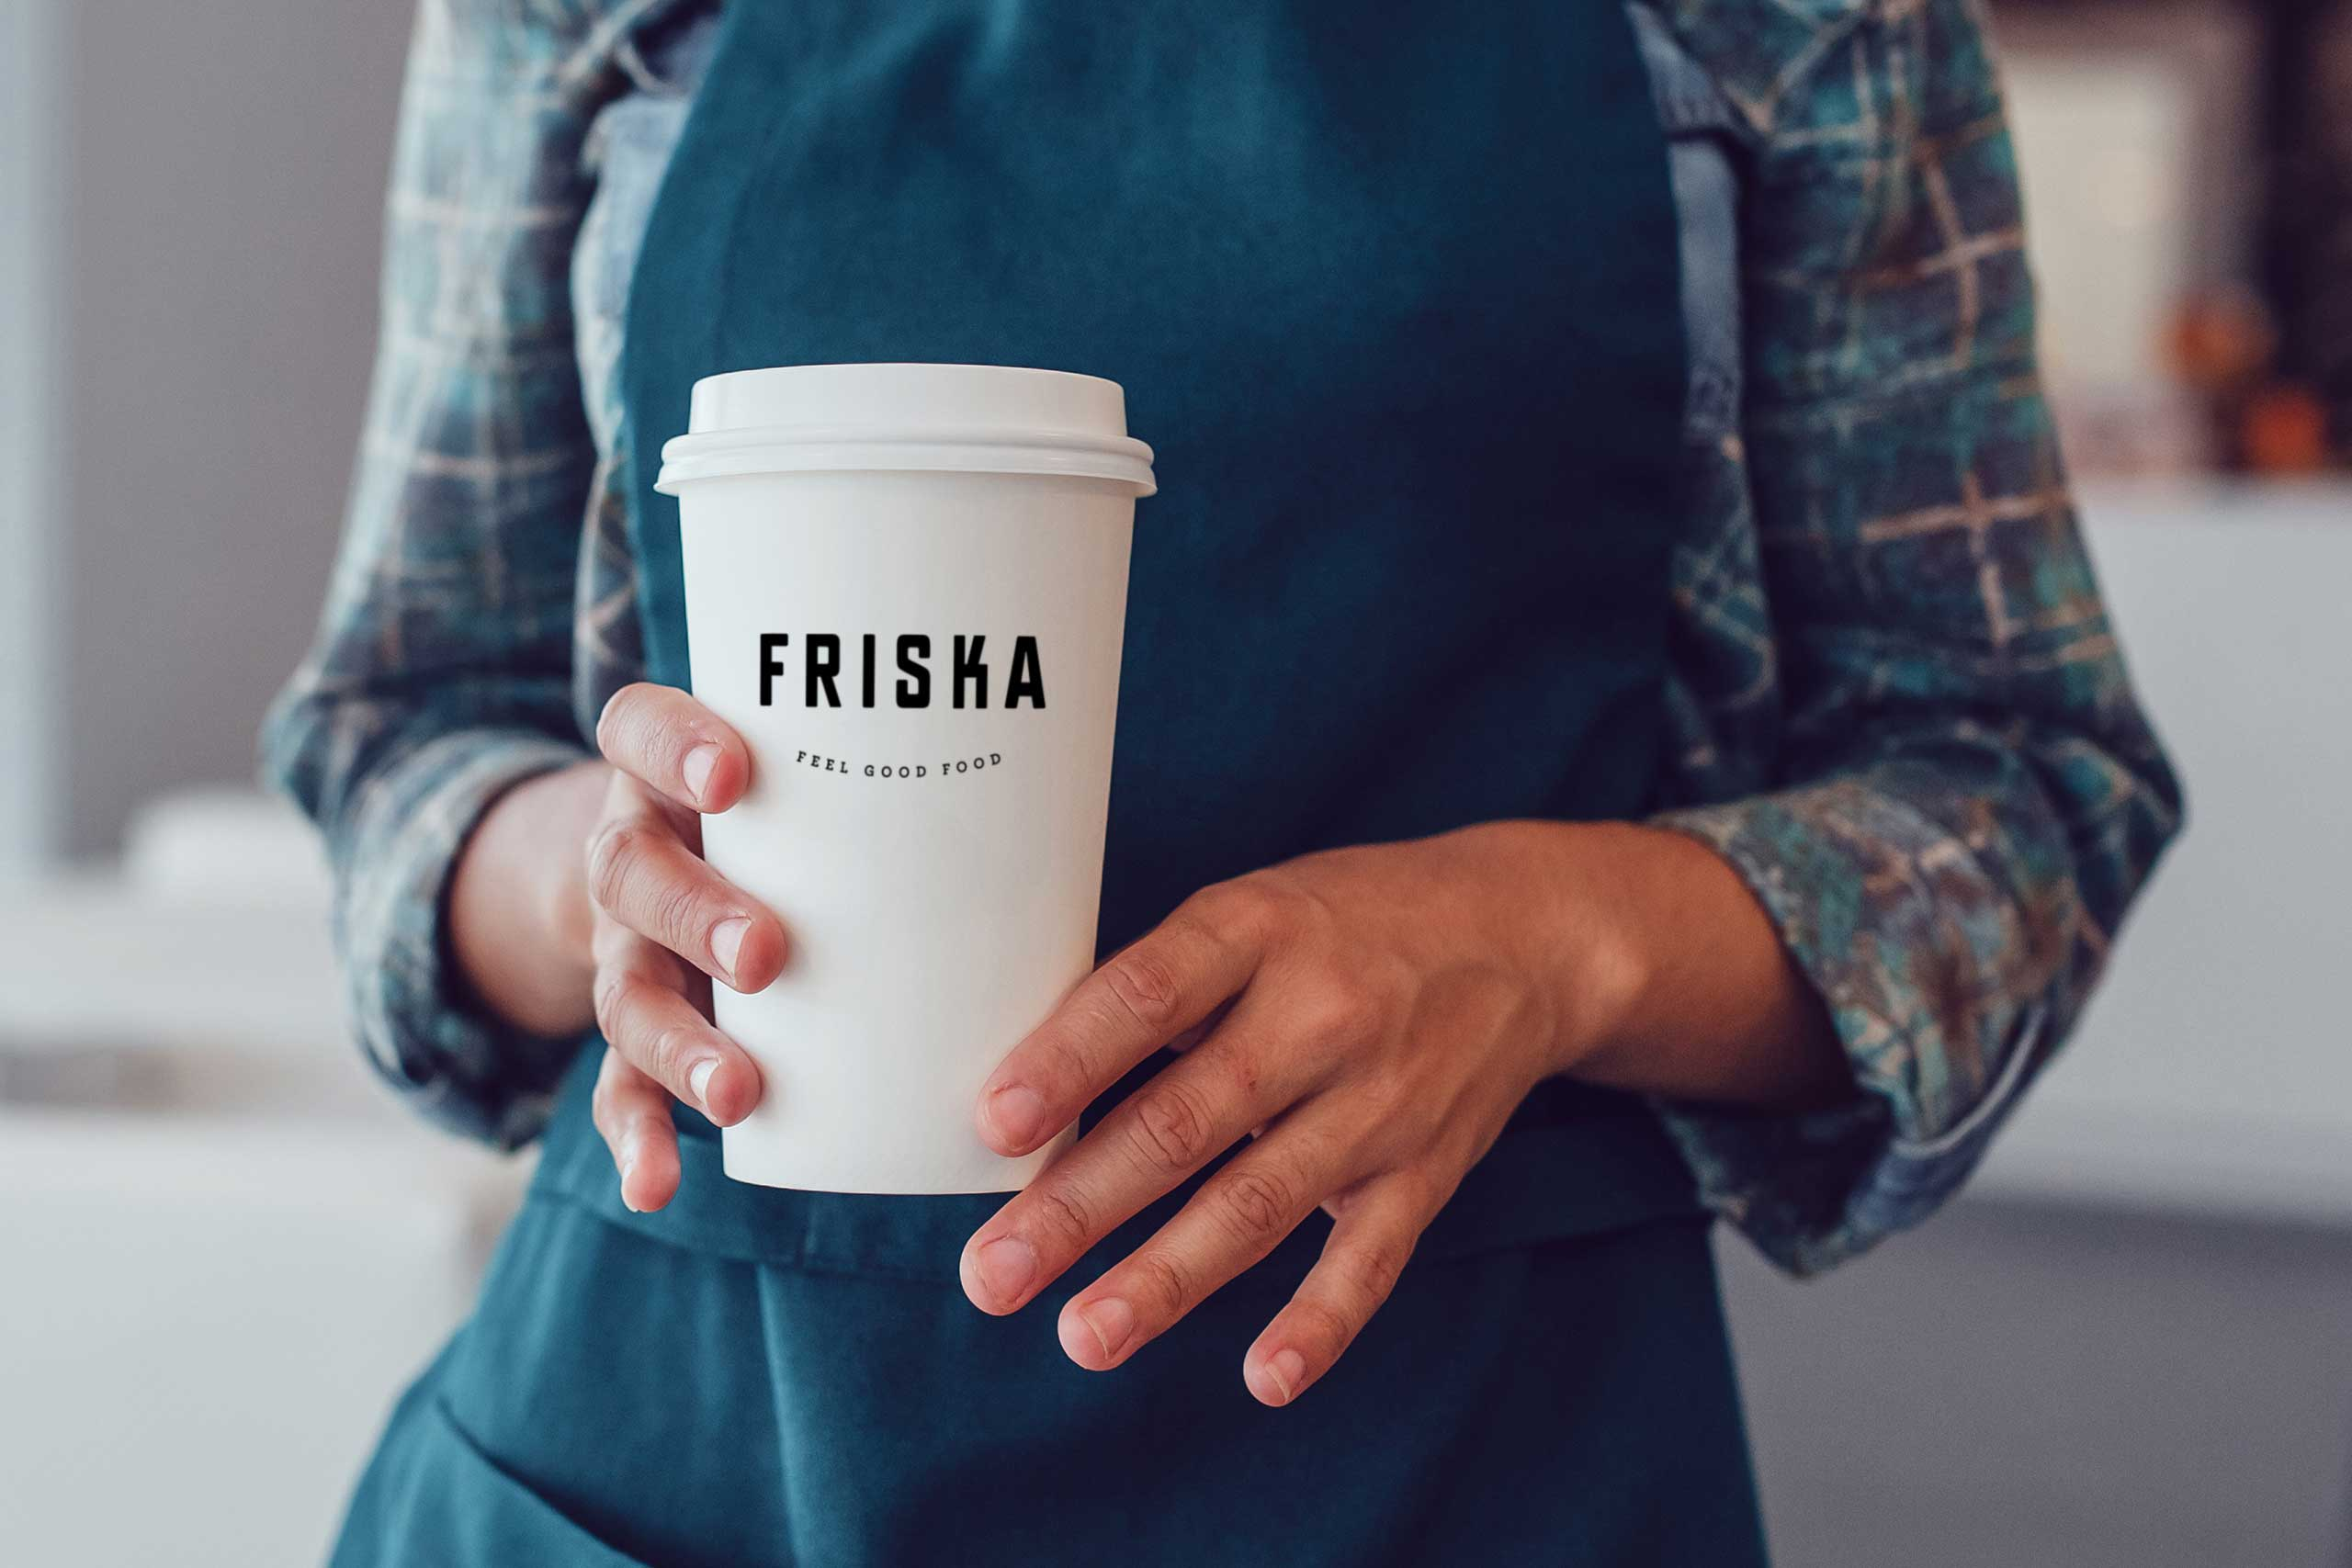 bristol branding for friska feel good food